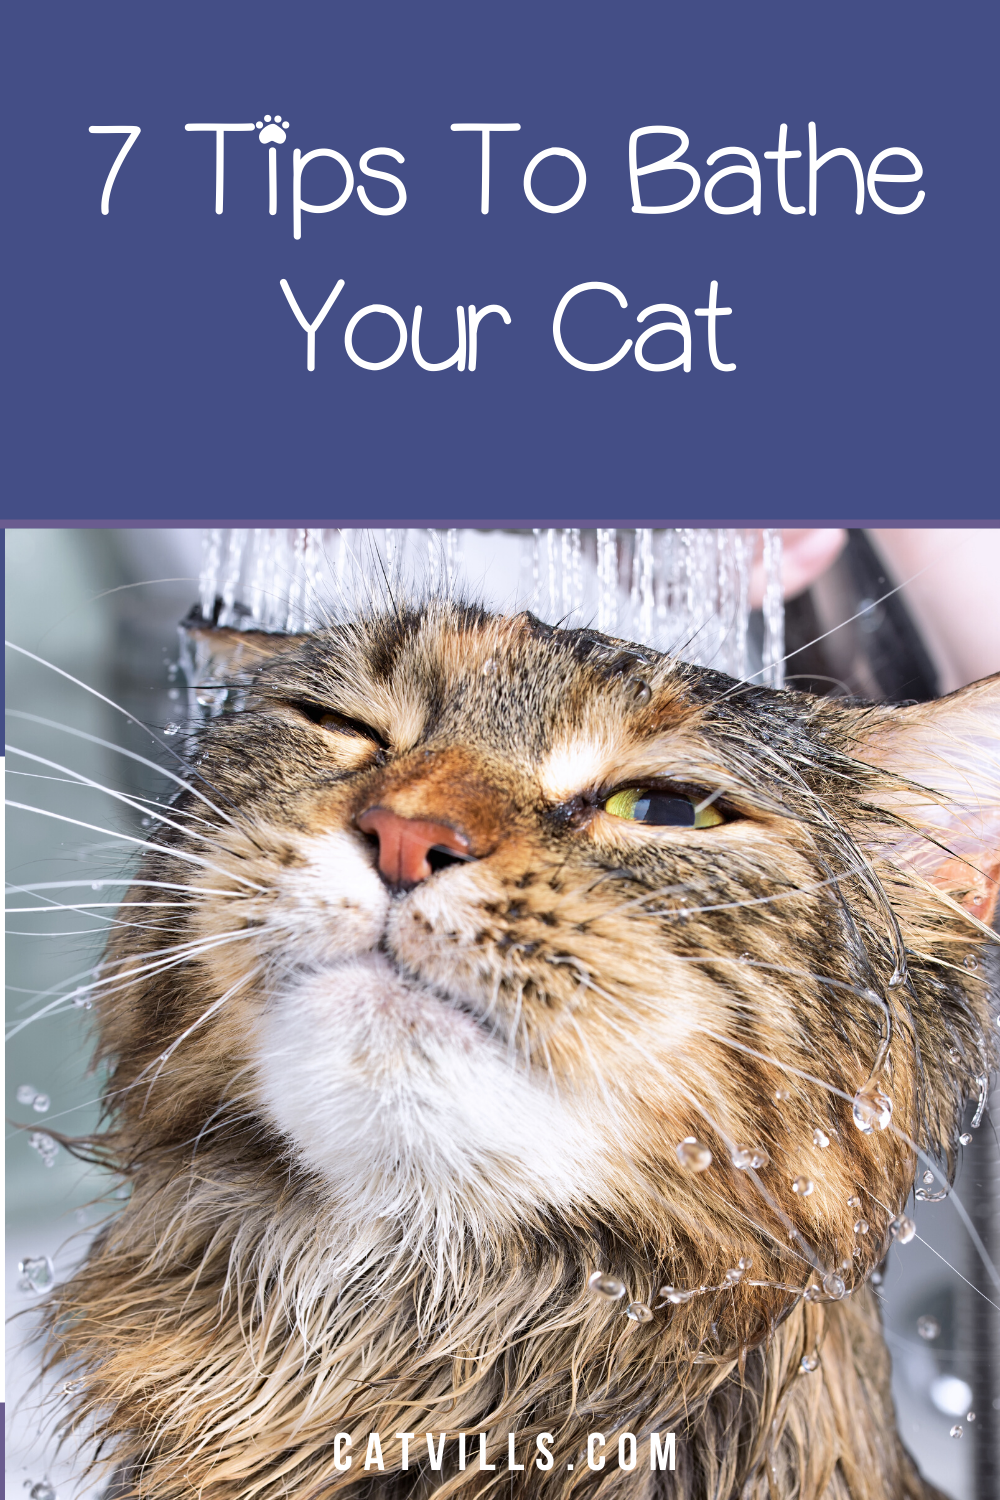 Catvills All About Cats And Kittens In 2020 Cats Cat Health Cats And Kittens